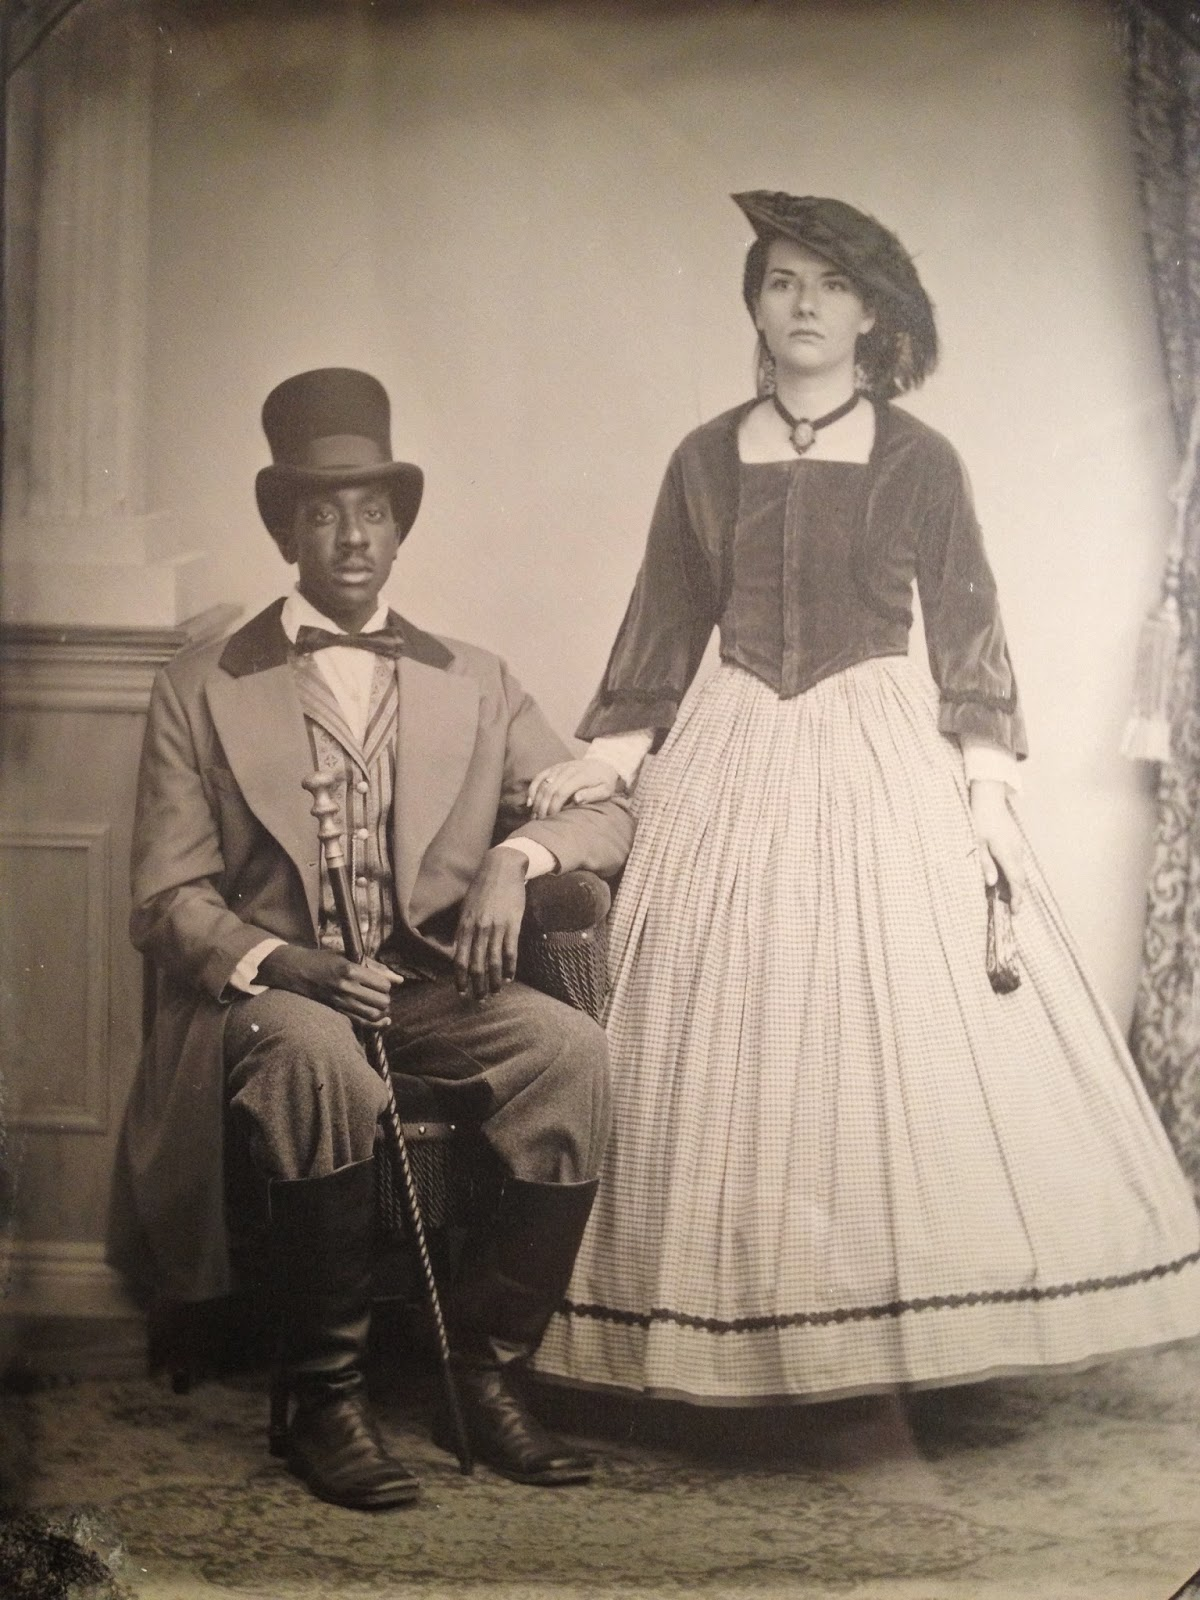 vintage fashion, retro fashion, fifties fashion, retro, fashion bloggers, vintage, vintage fashion, fashion blogger, retro style, Civil War tintype, tintypes, ambrotypes, Sabrina and DaKari, Vibrant Vintage, Sabrina, girls with short hair